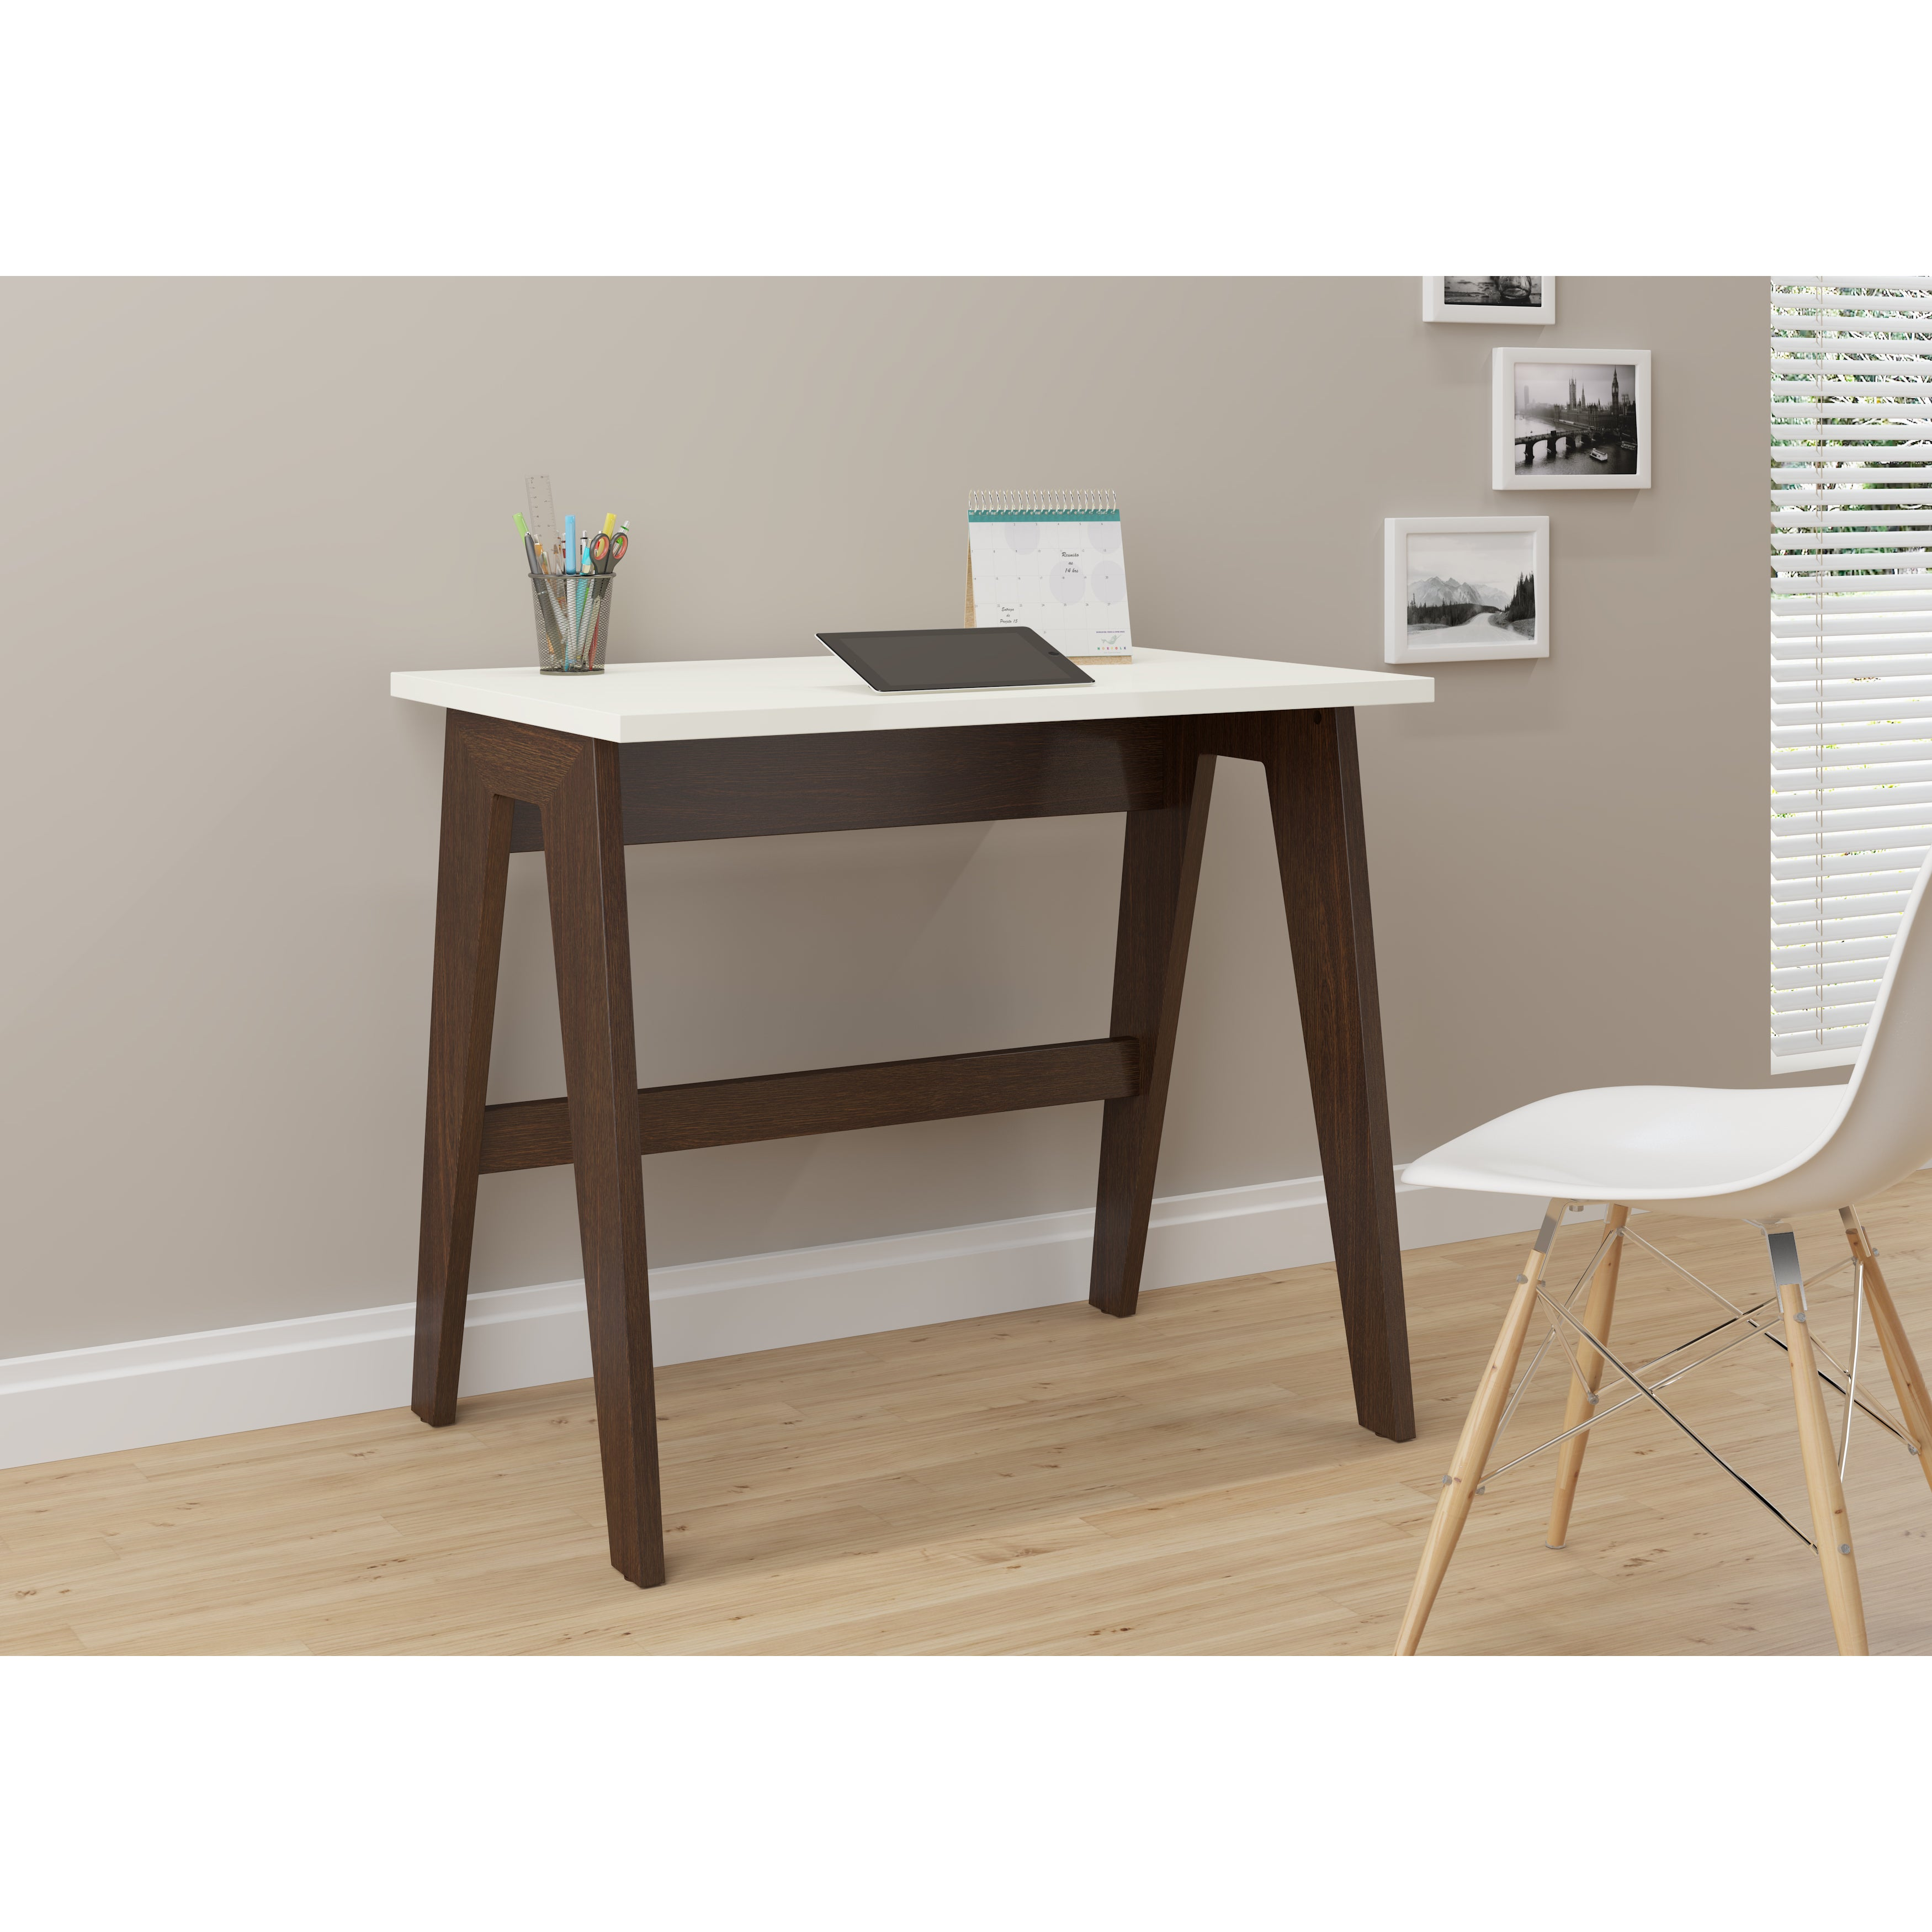 designers of home design small desks for space contemporary desk nice furniture furnature office